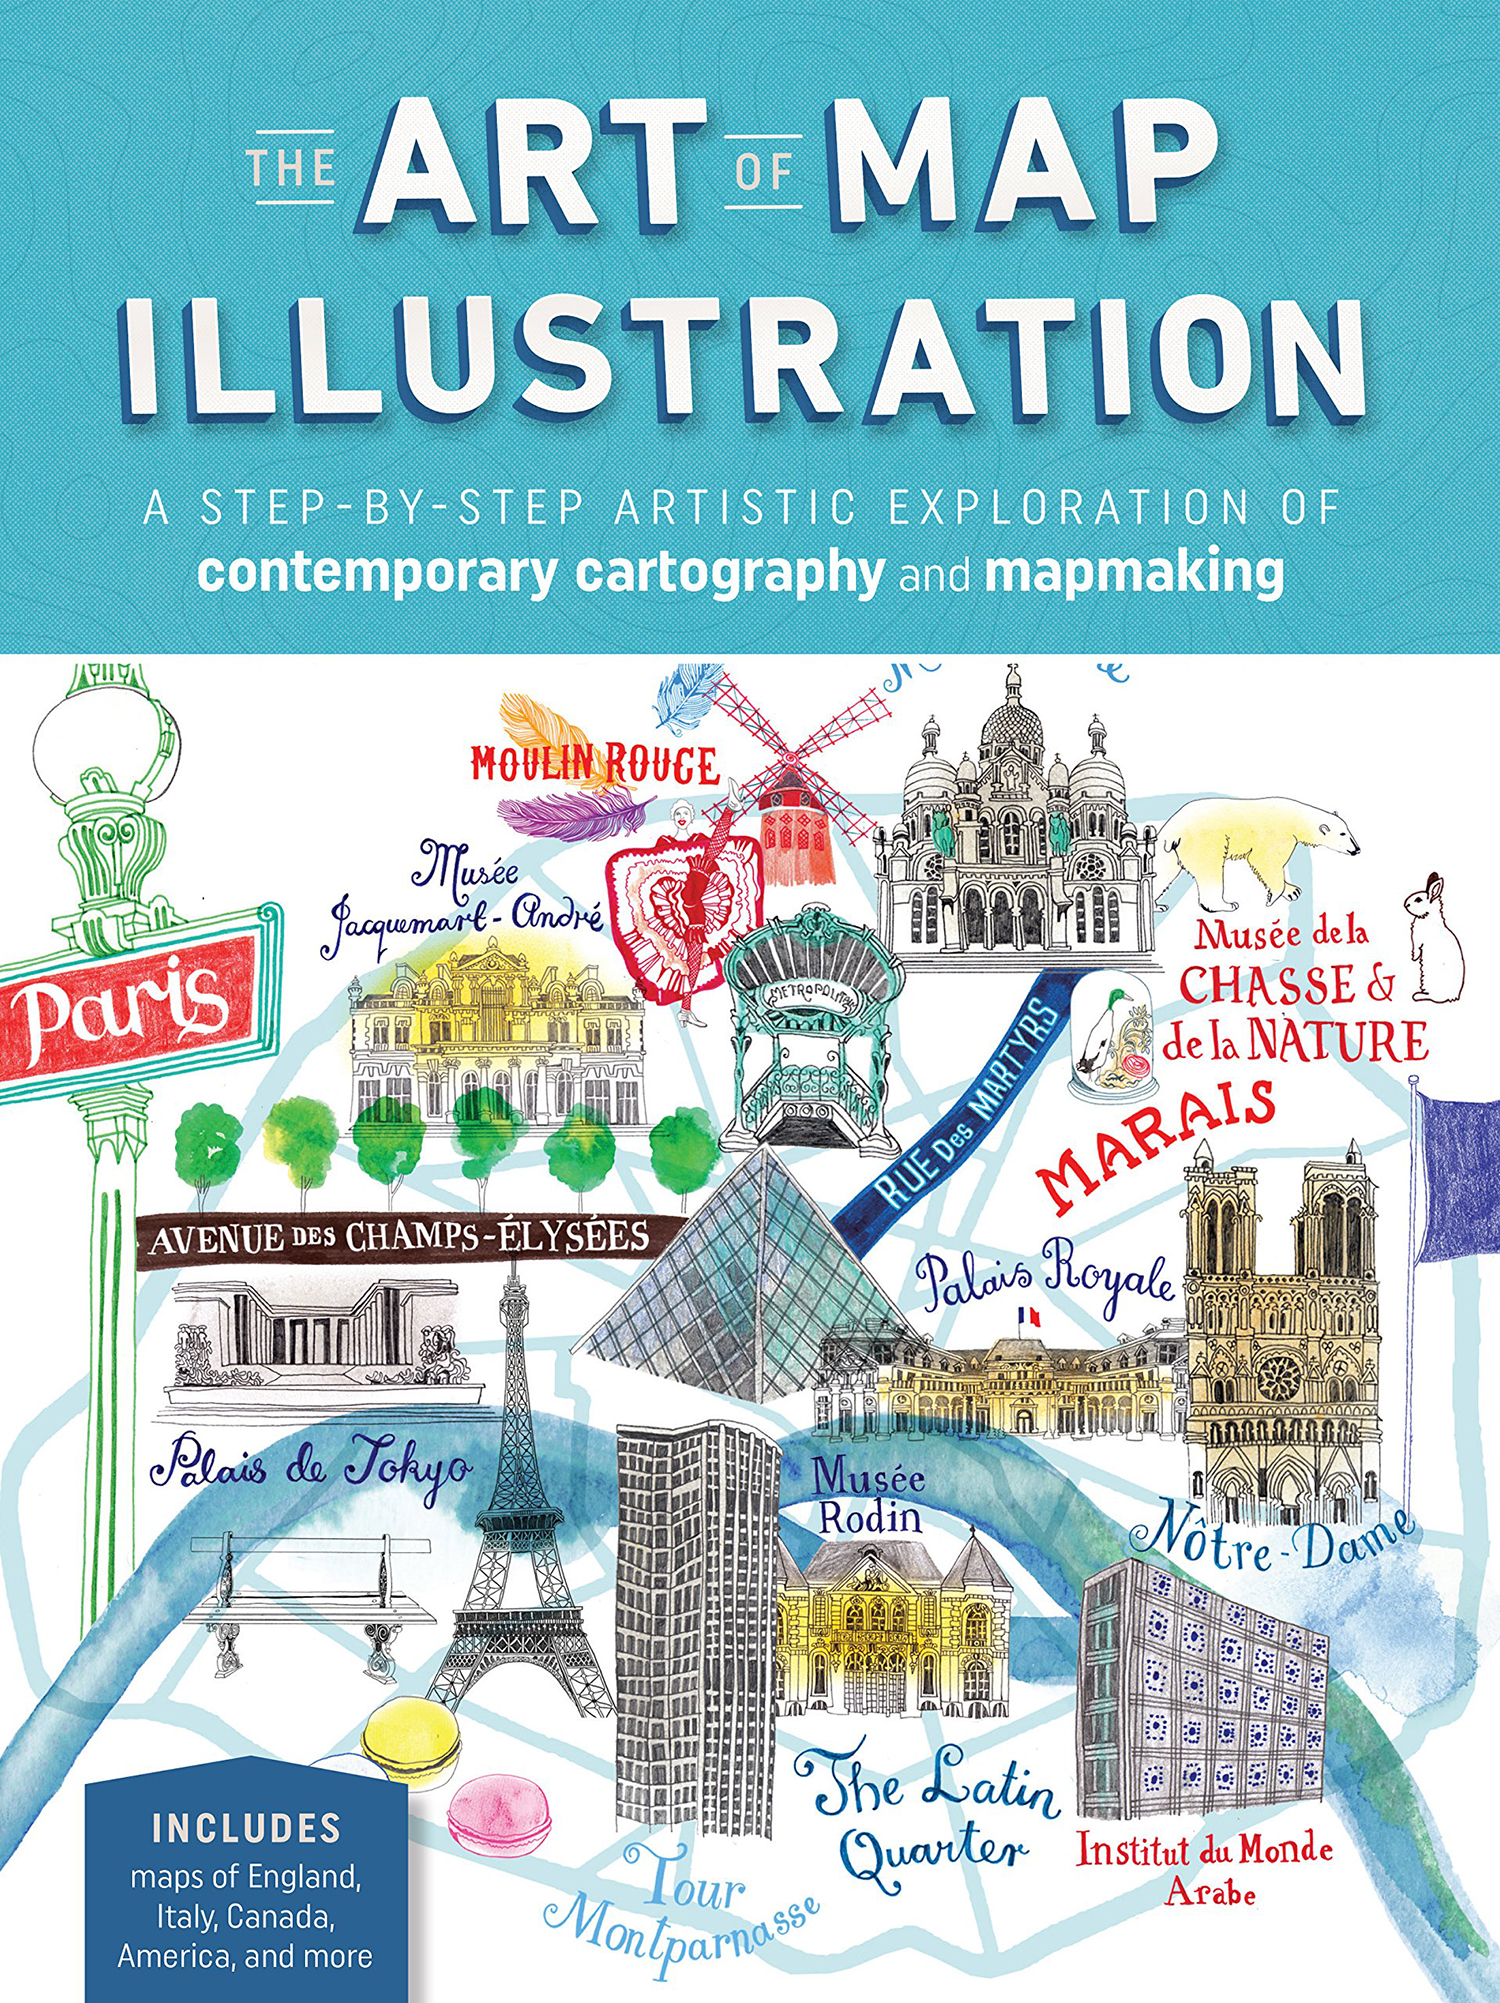 The Art of Map Illustration - Walter Foster Publishing